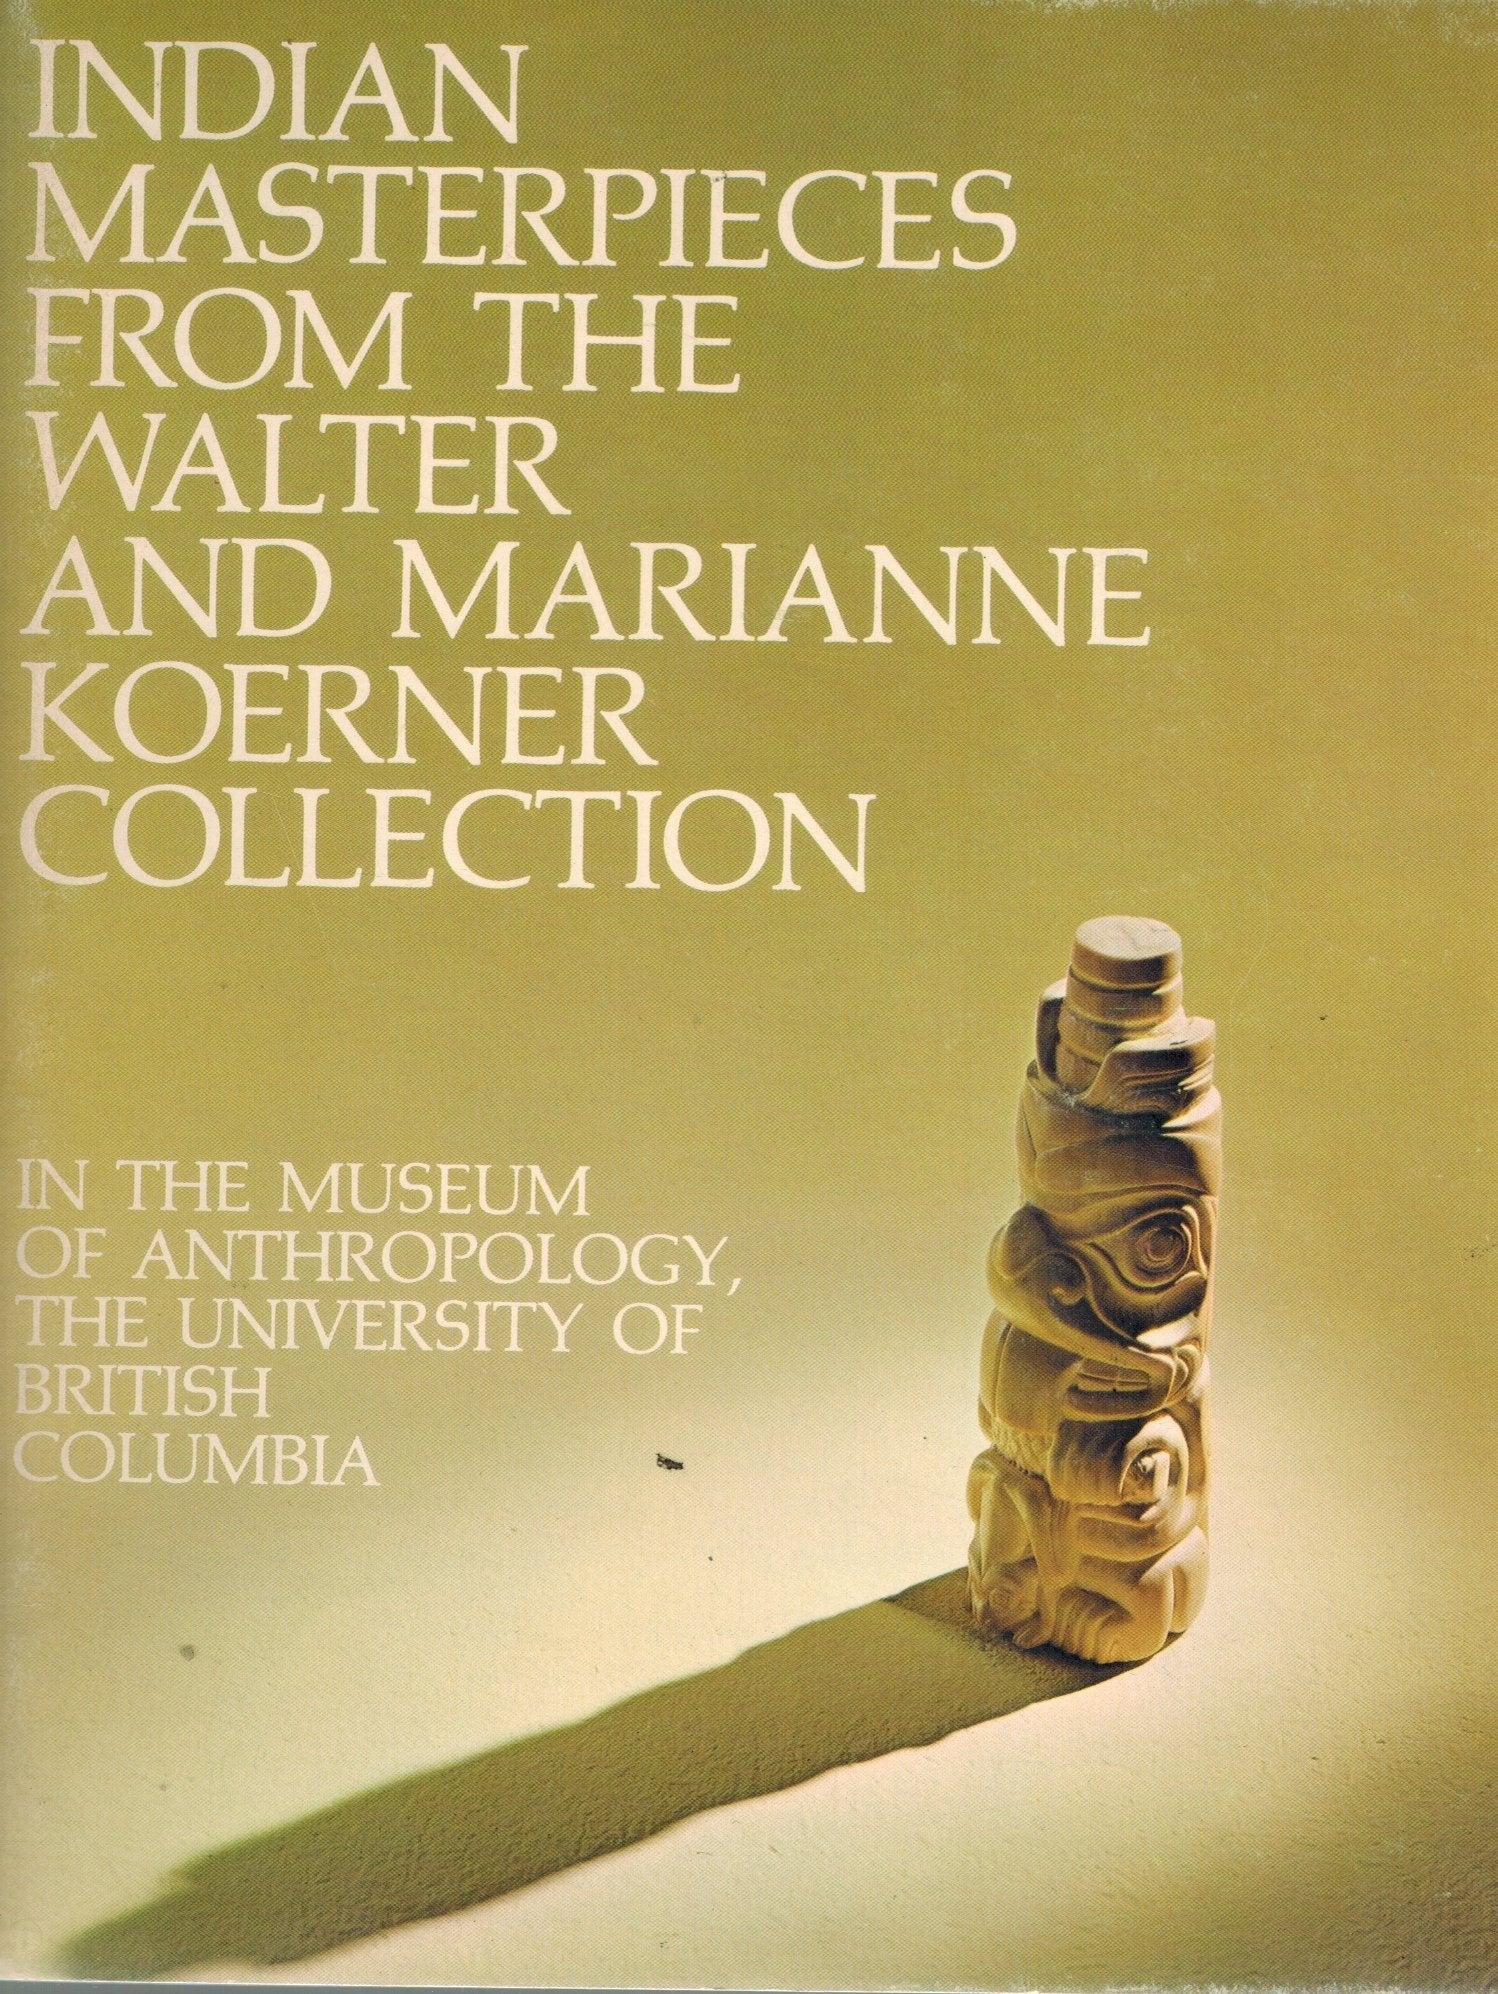 INDIAN MASTERPIECES FROM THE WALTER AND MARIANNE KOERNER COLLECTION - books-new